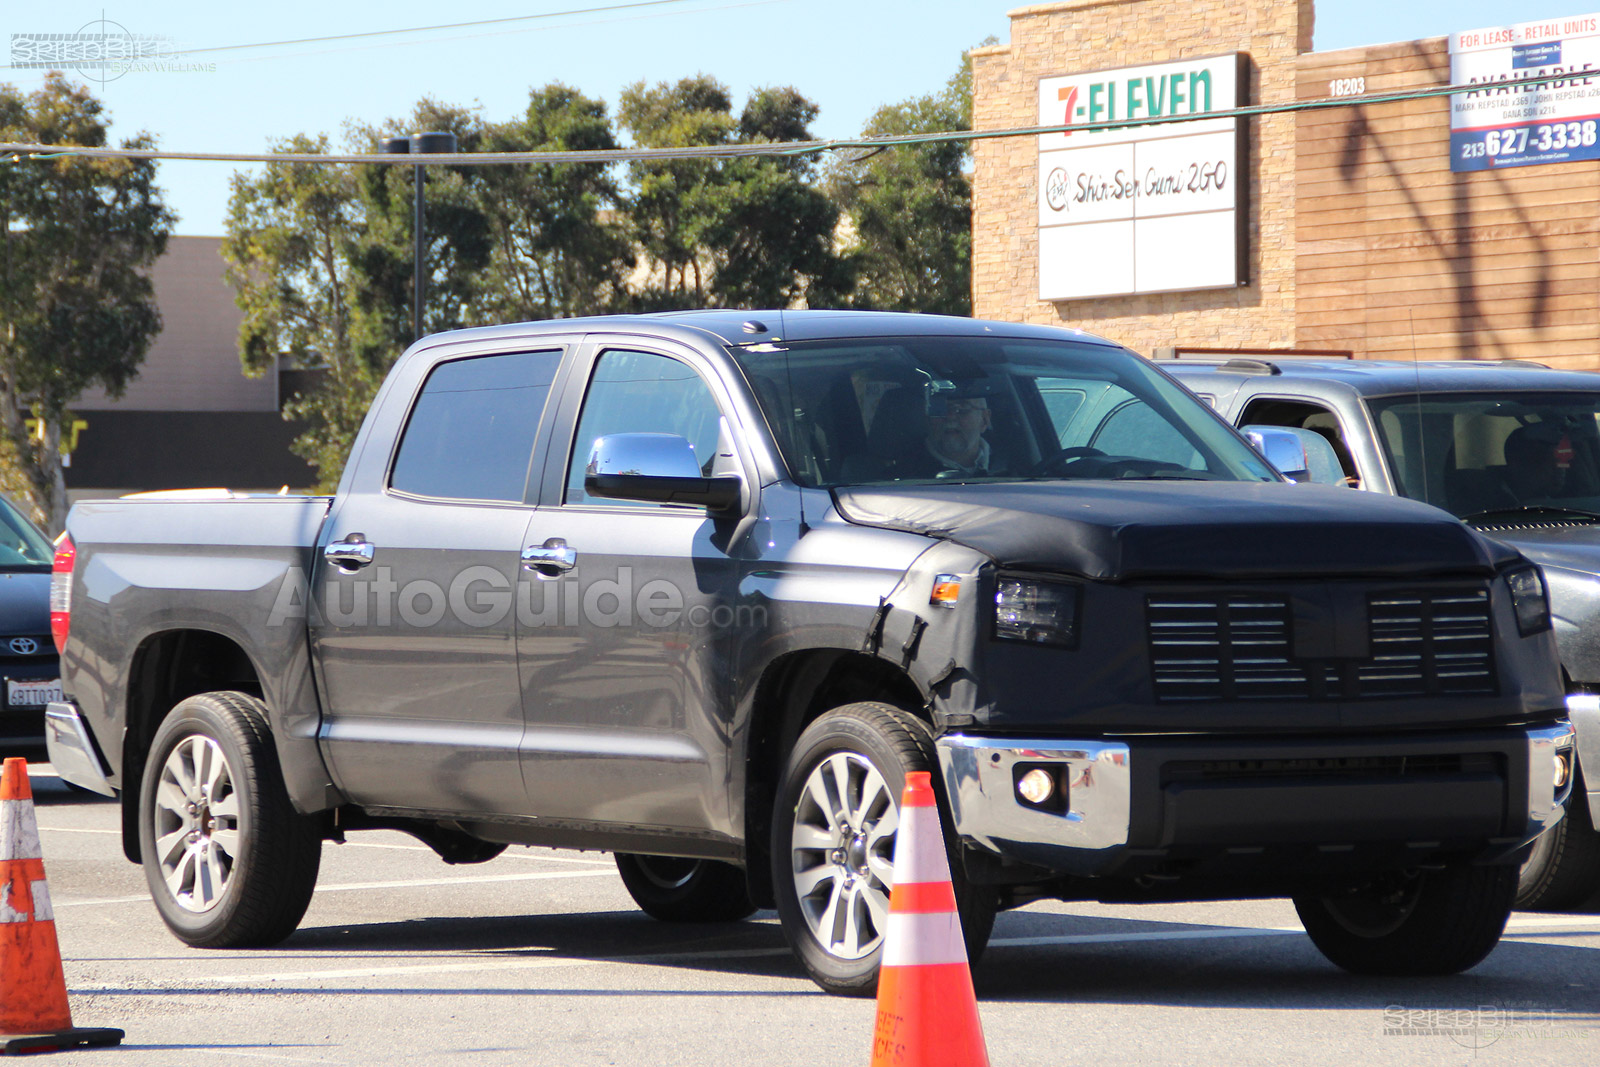 Toyota tundra facelift spy photos 01